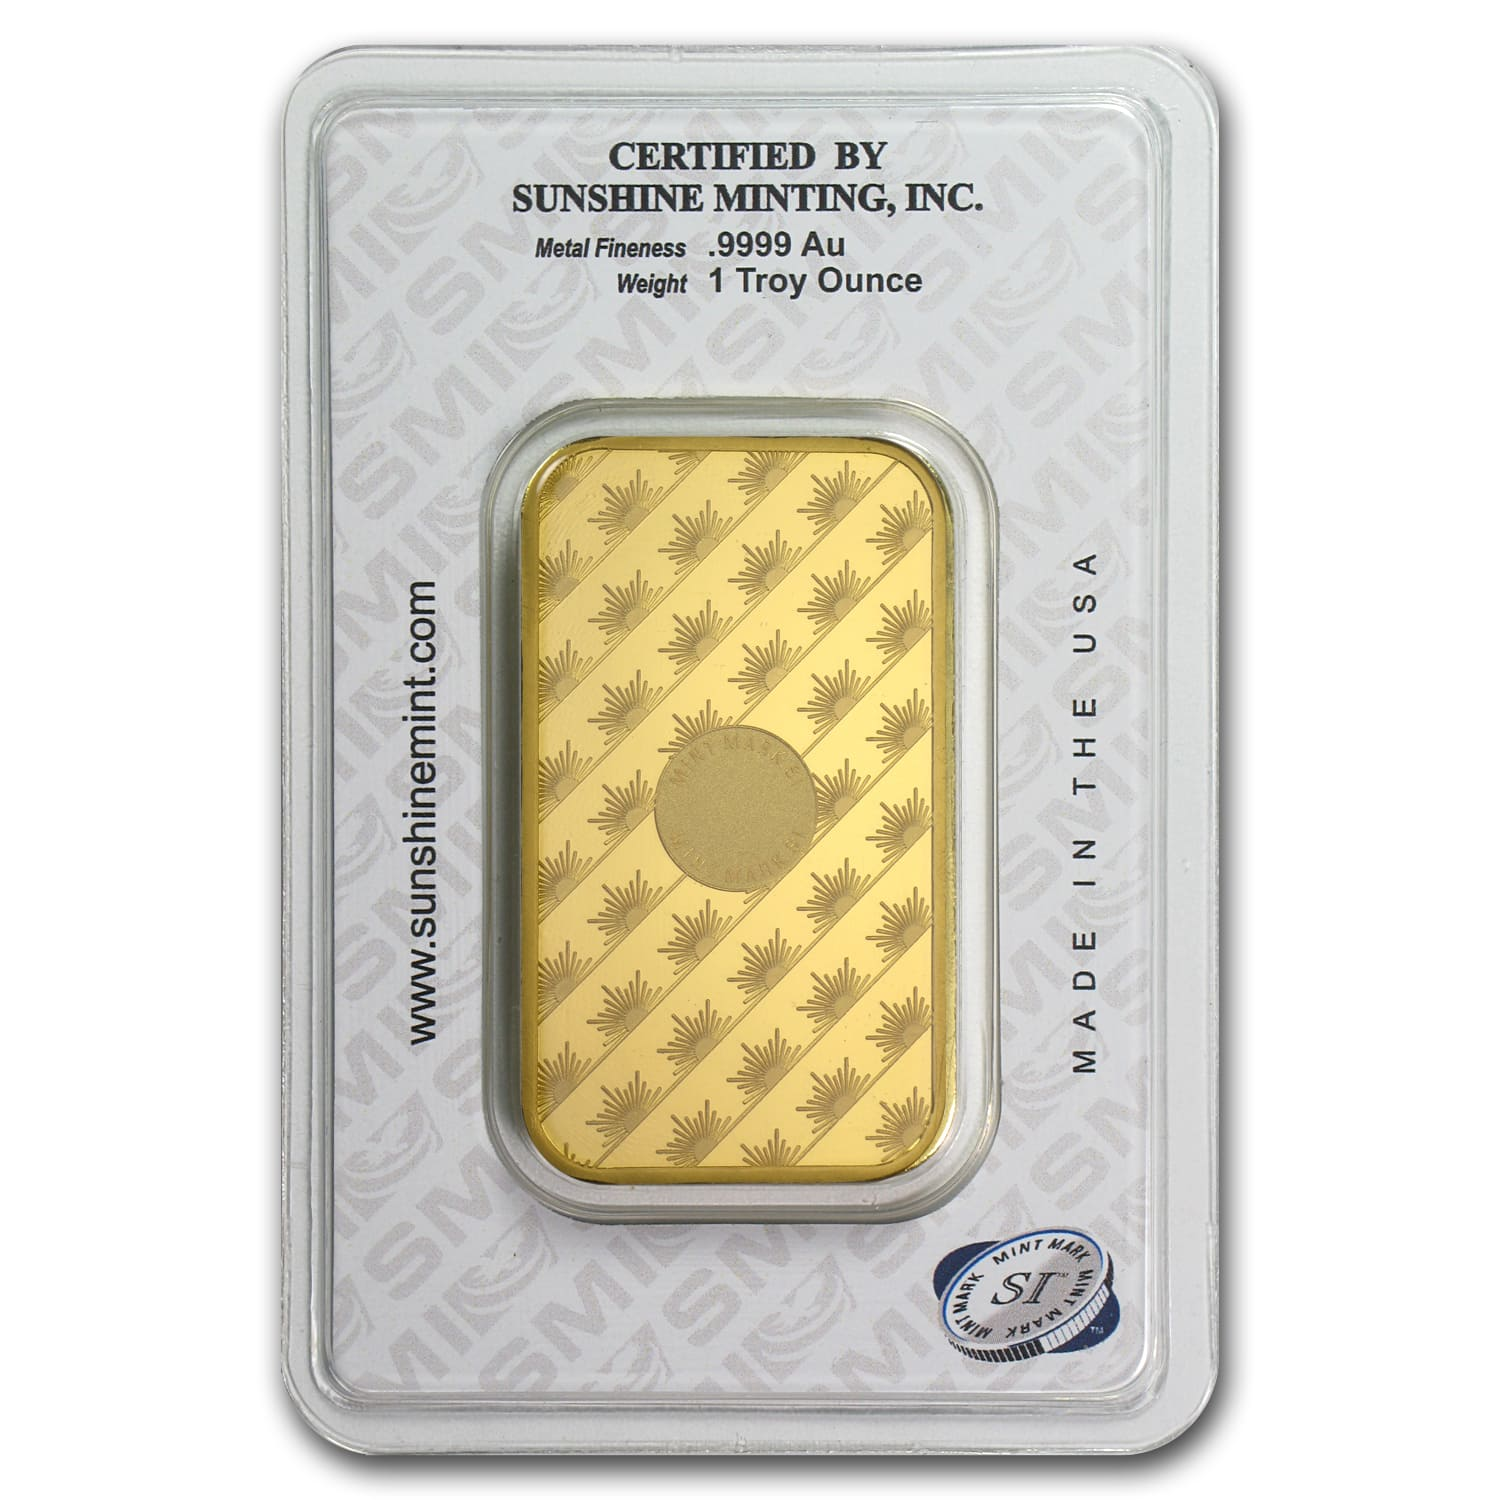 1 oz Gold Bars - Sunshine Minting (New Design in TEP Packaging)